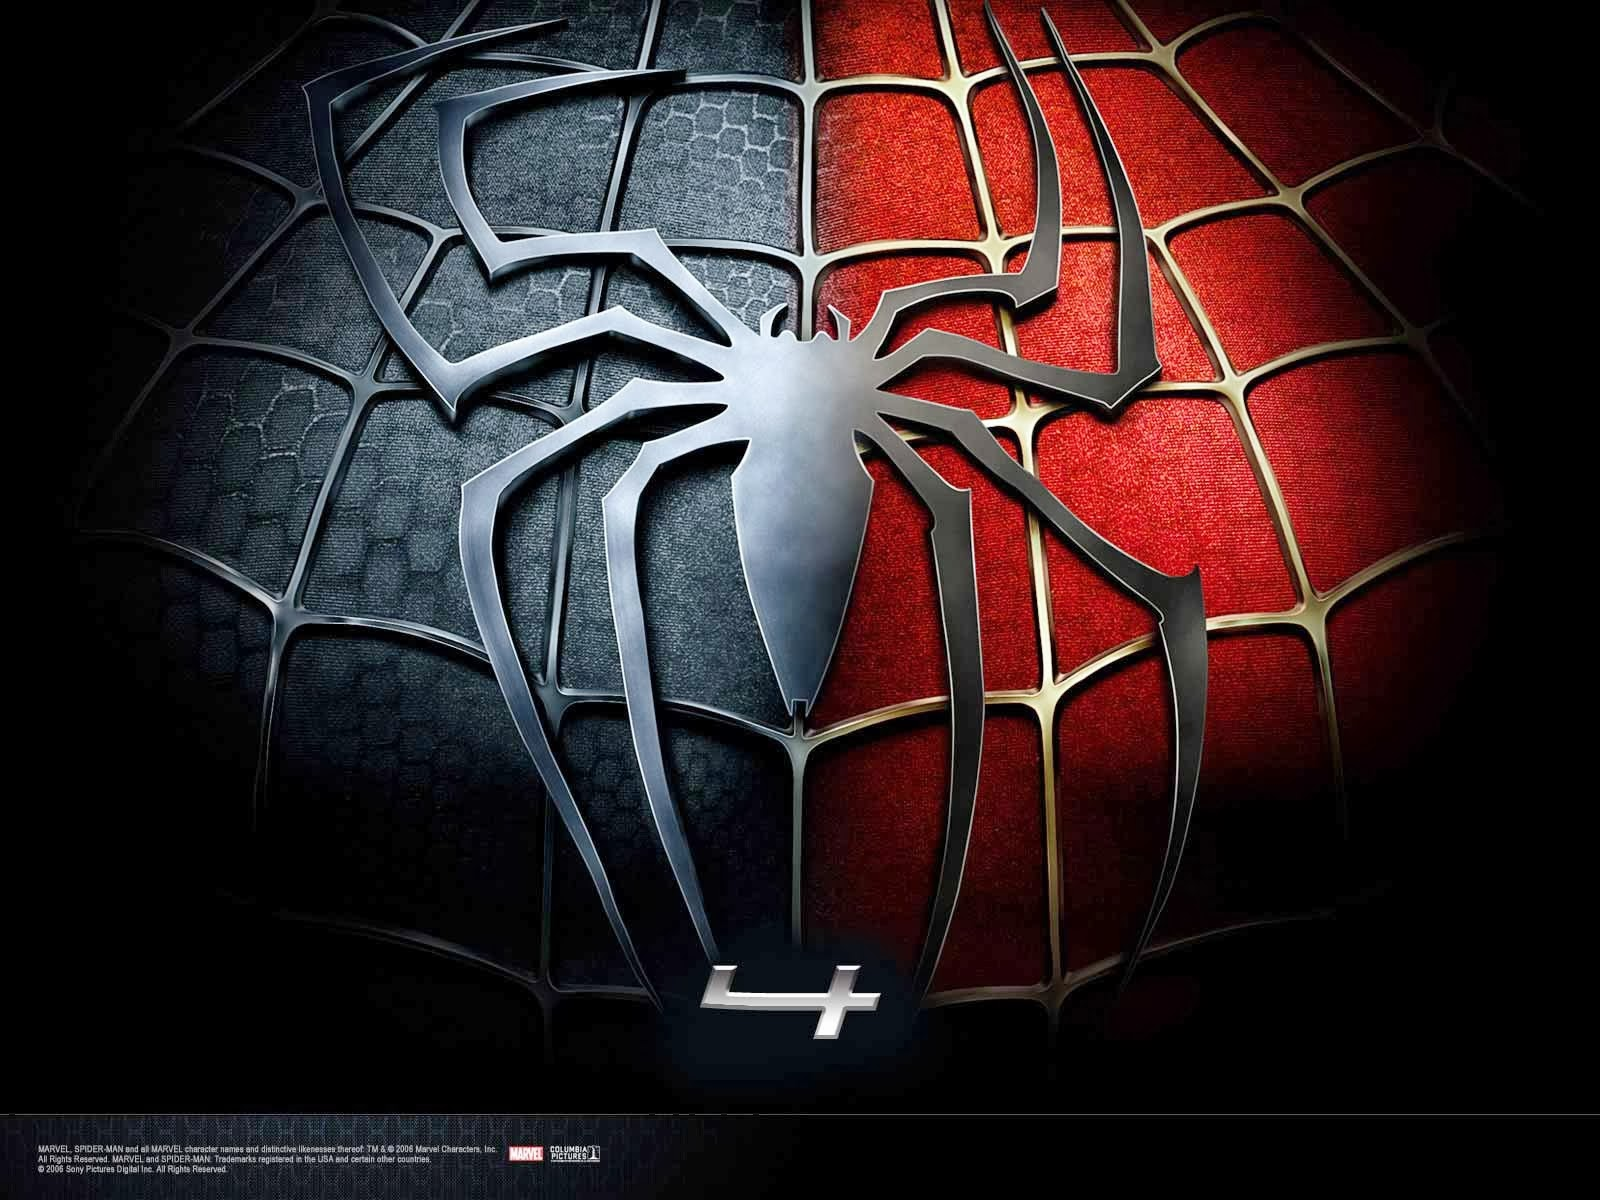 Spiderman 4 HD Wallpapers - HD Wallpapers Blog